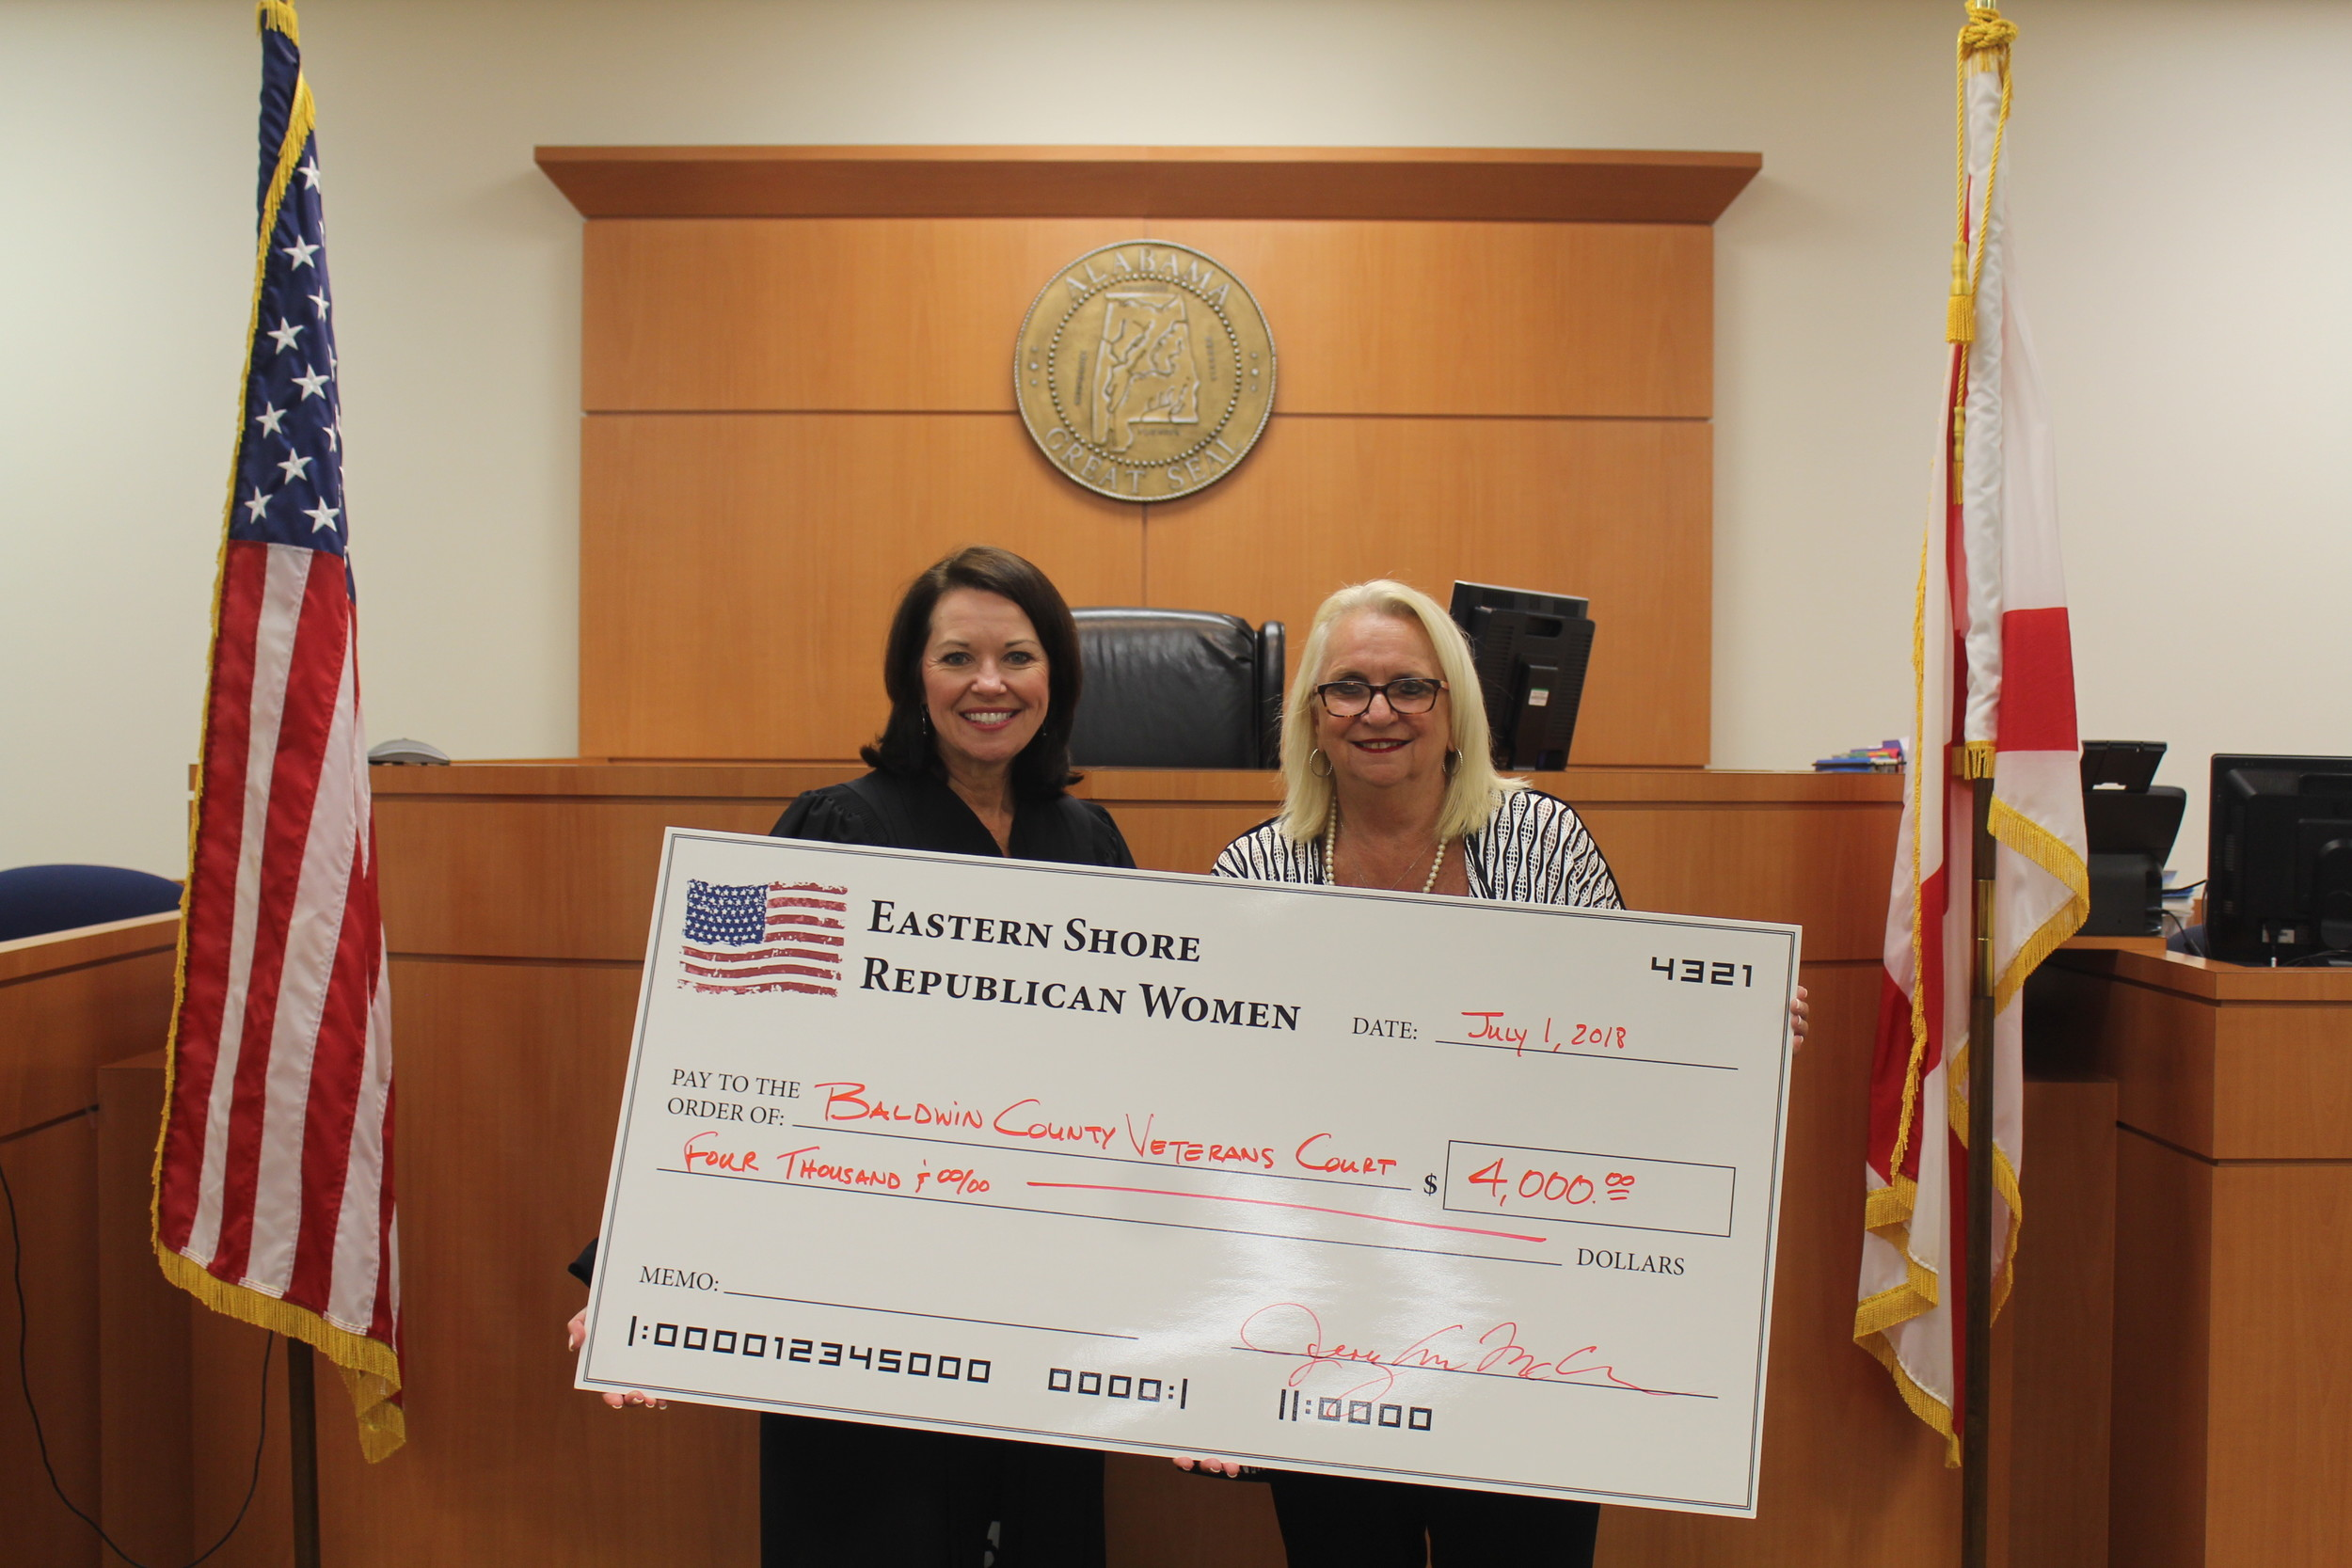 Eastern Shore Republican Women President Jerry Ann McCarron presents a $4,000 check to Judge Michelle Thomason for the Baldwin County Veterans Court.